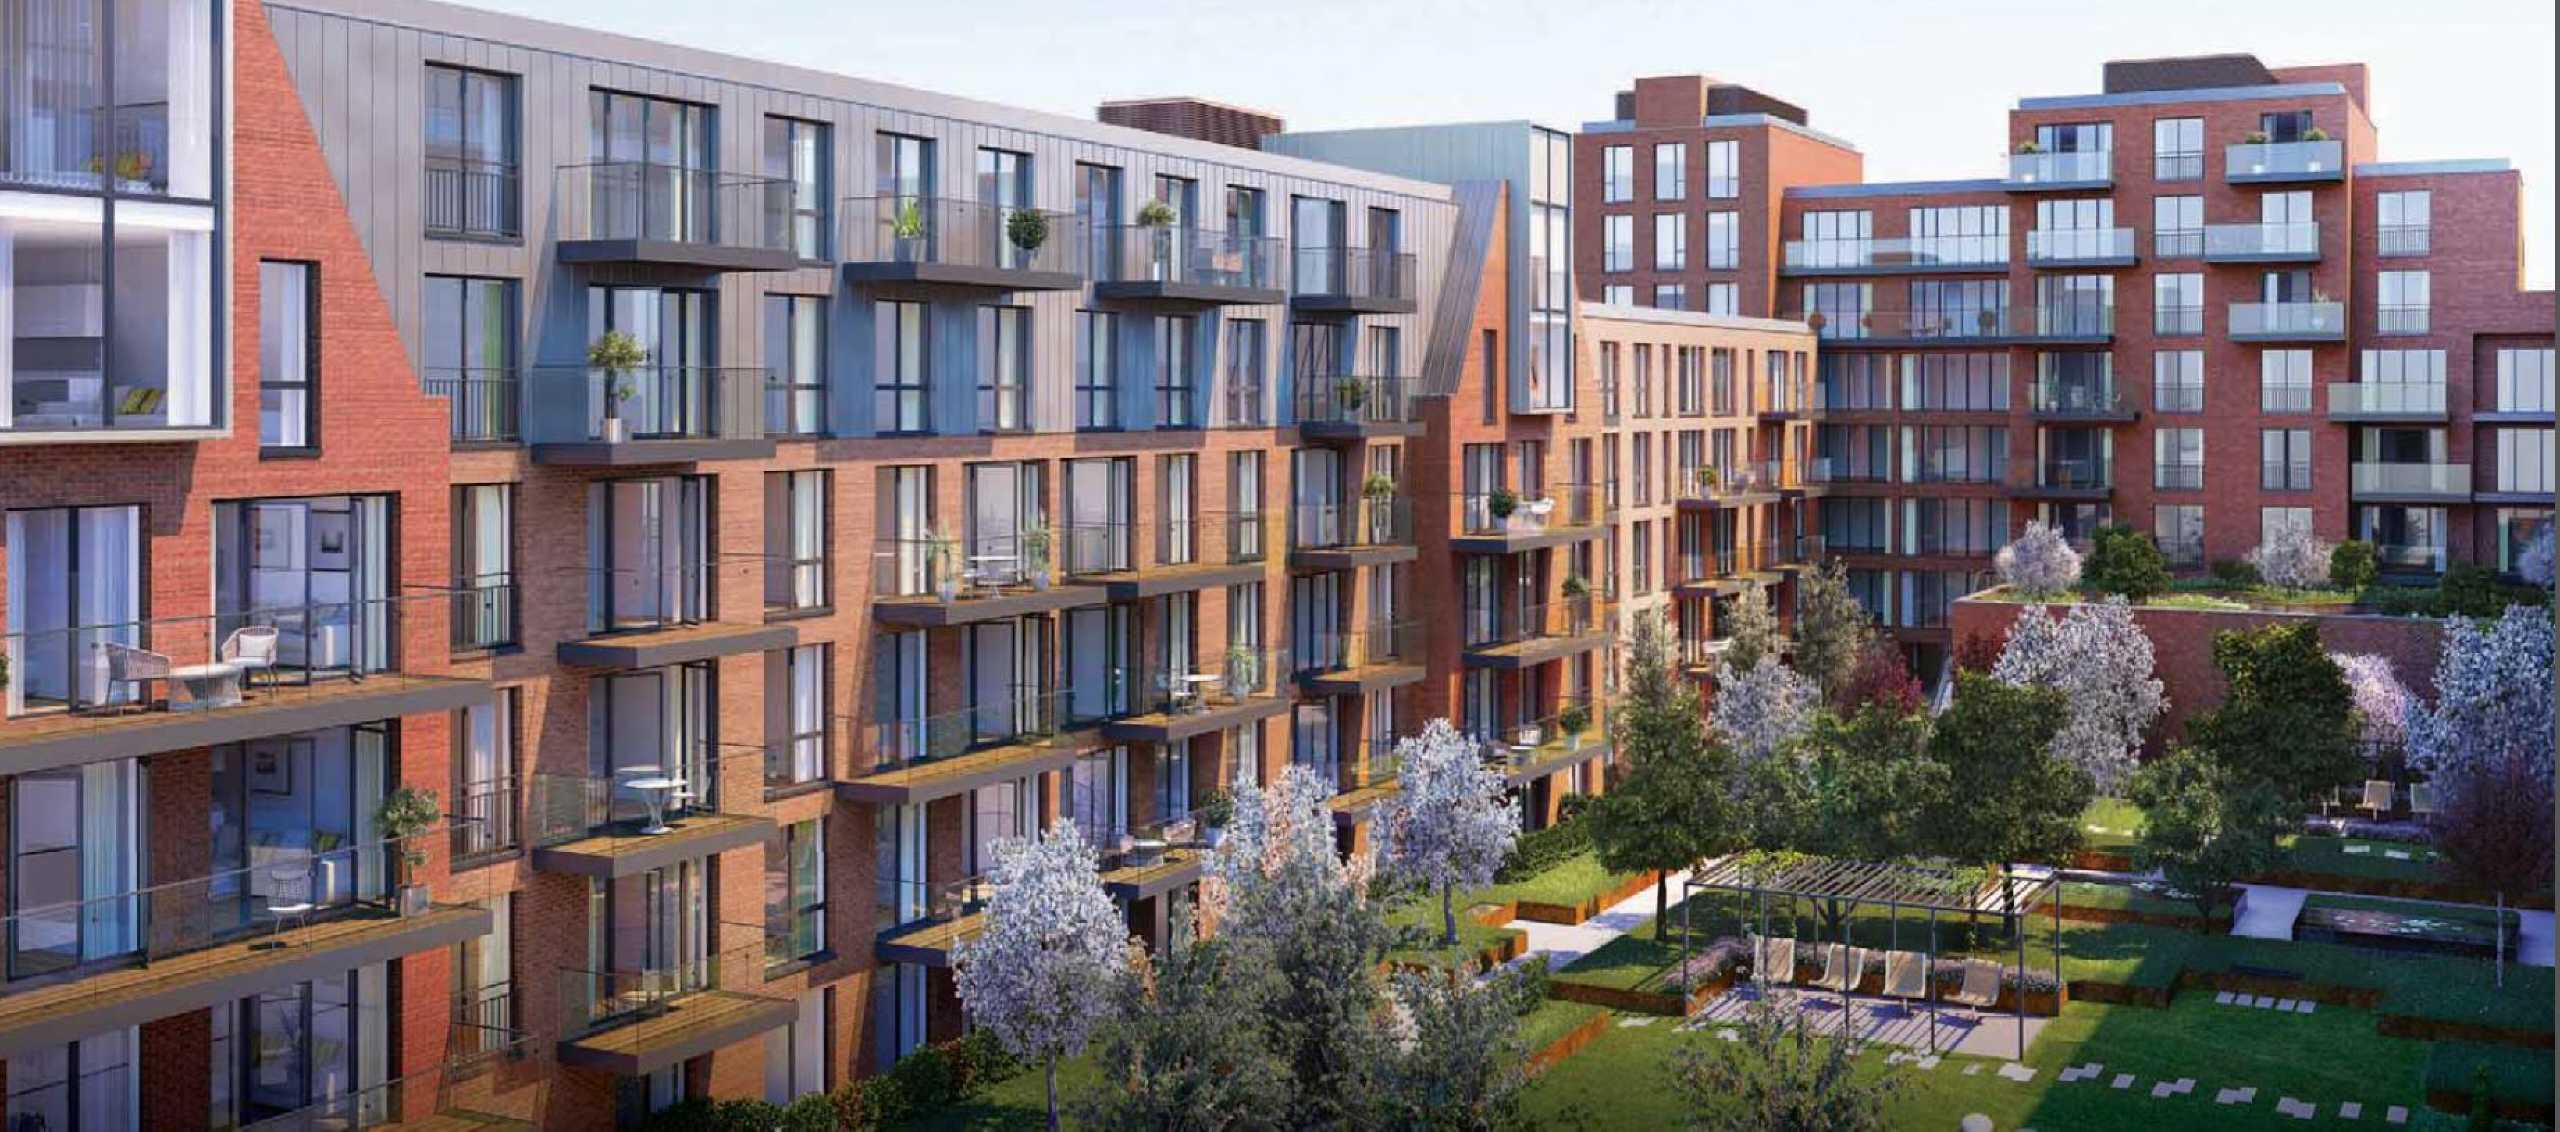 2 Bedrooms Apartment Flat for sale in Streatham Hill, Core G, 142-170 Streatham Hill, London, SW2